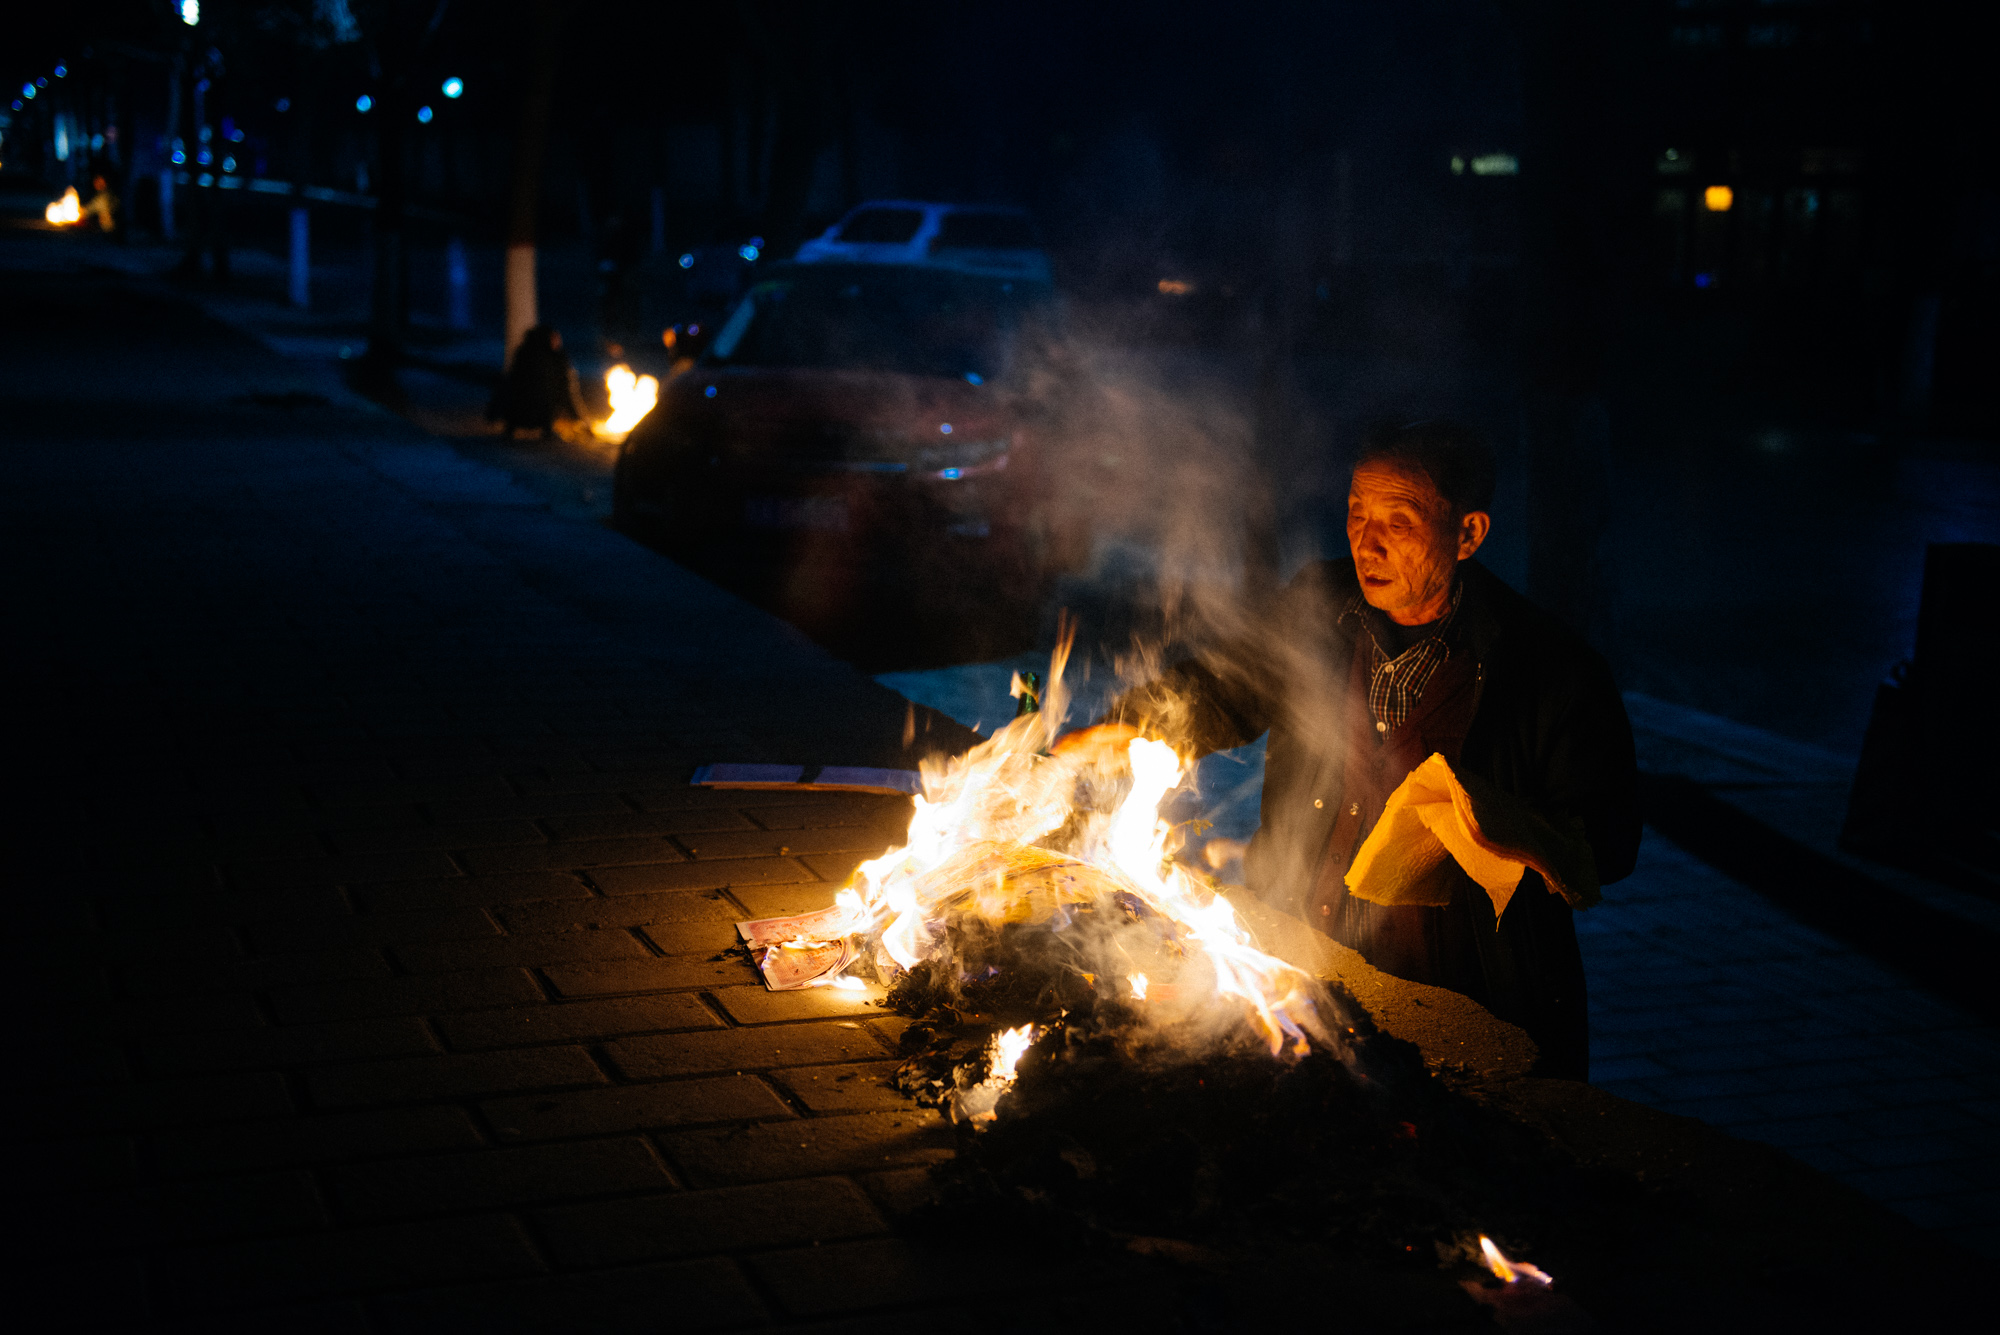 Right at the bottom of the east side of the old city walls, an old man burns tons of paper.